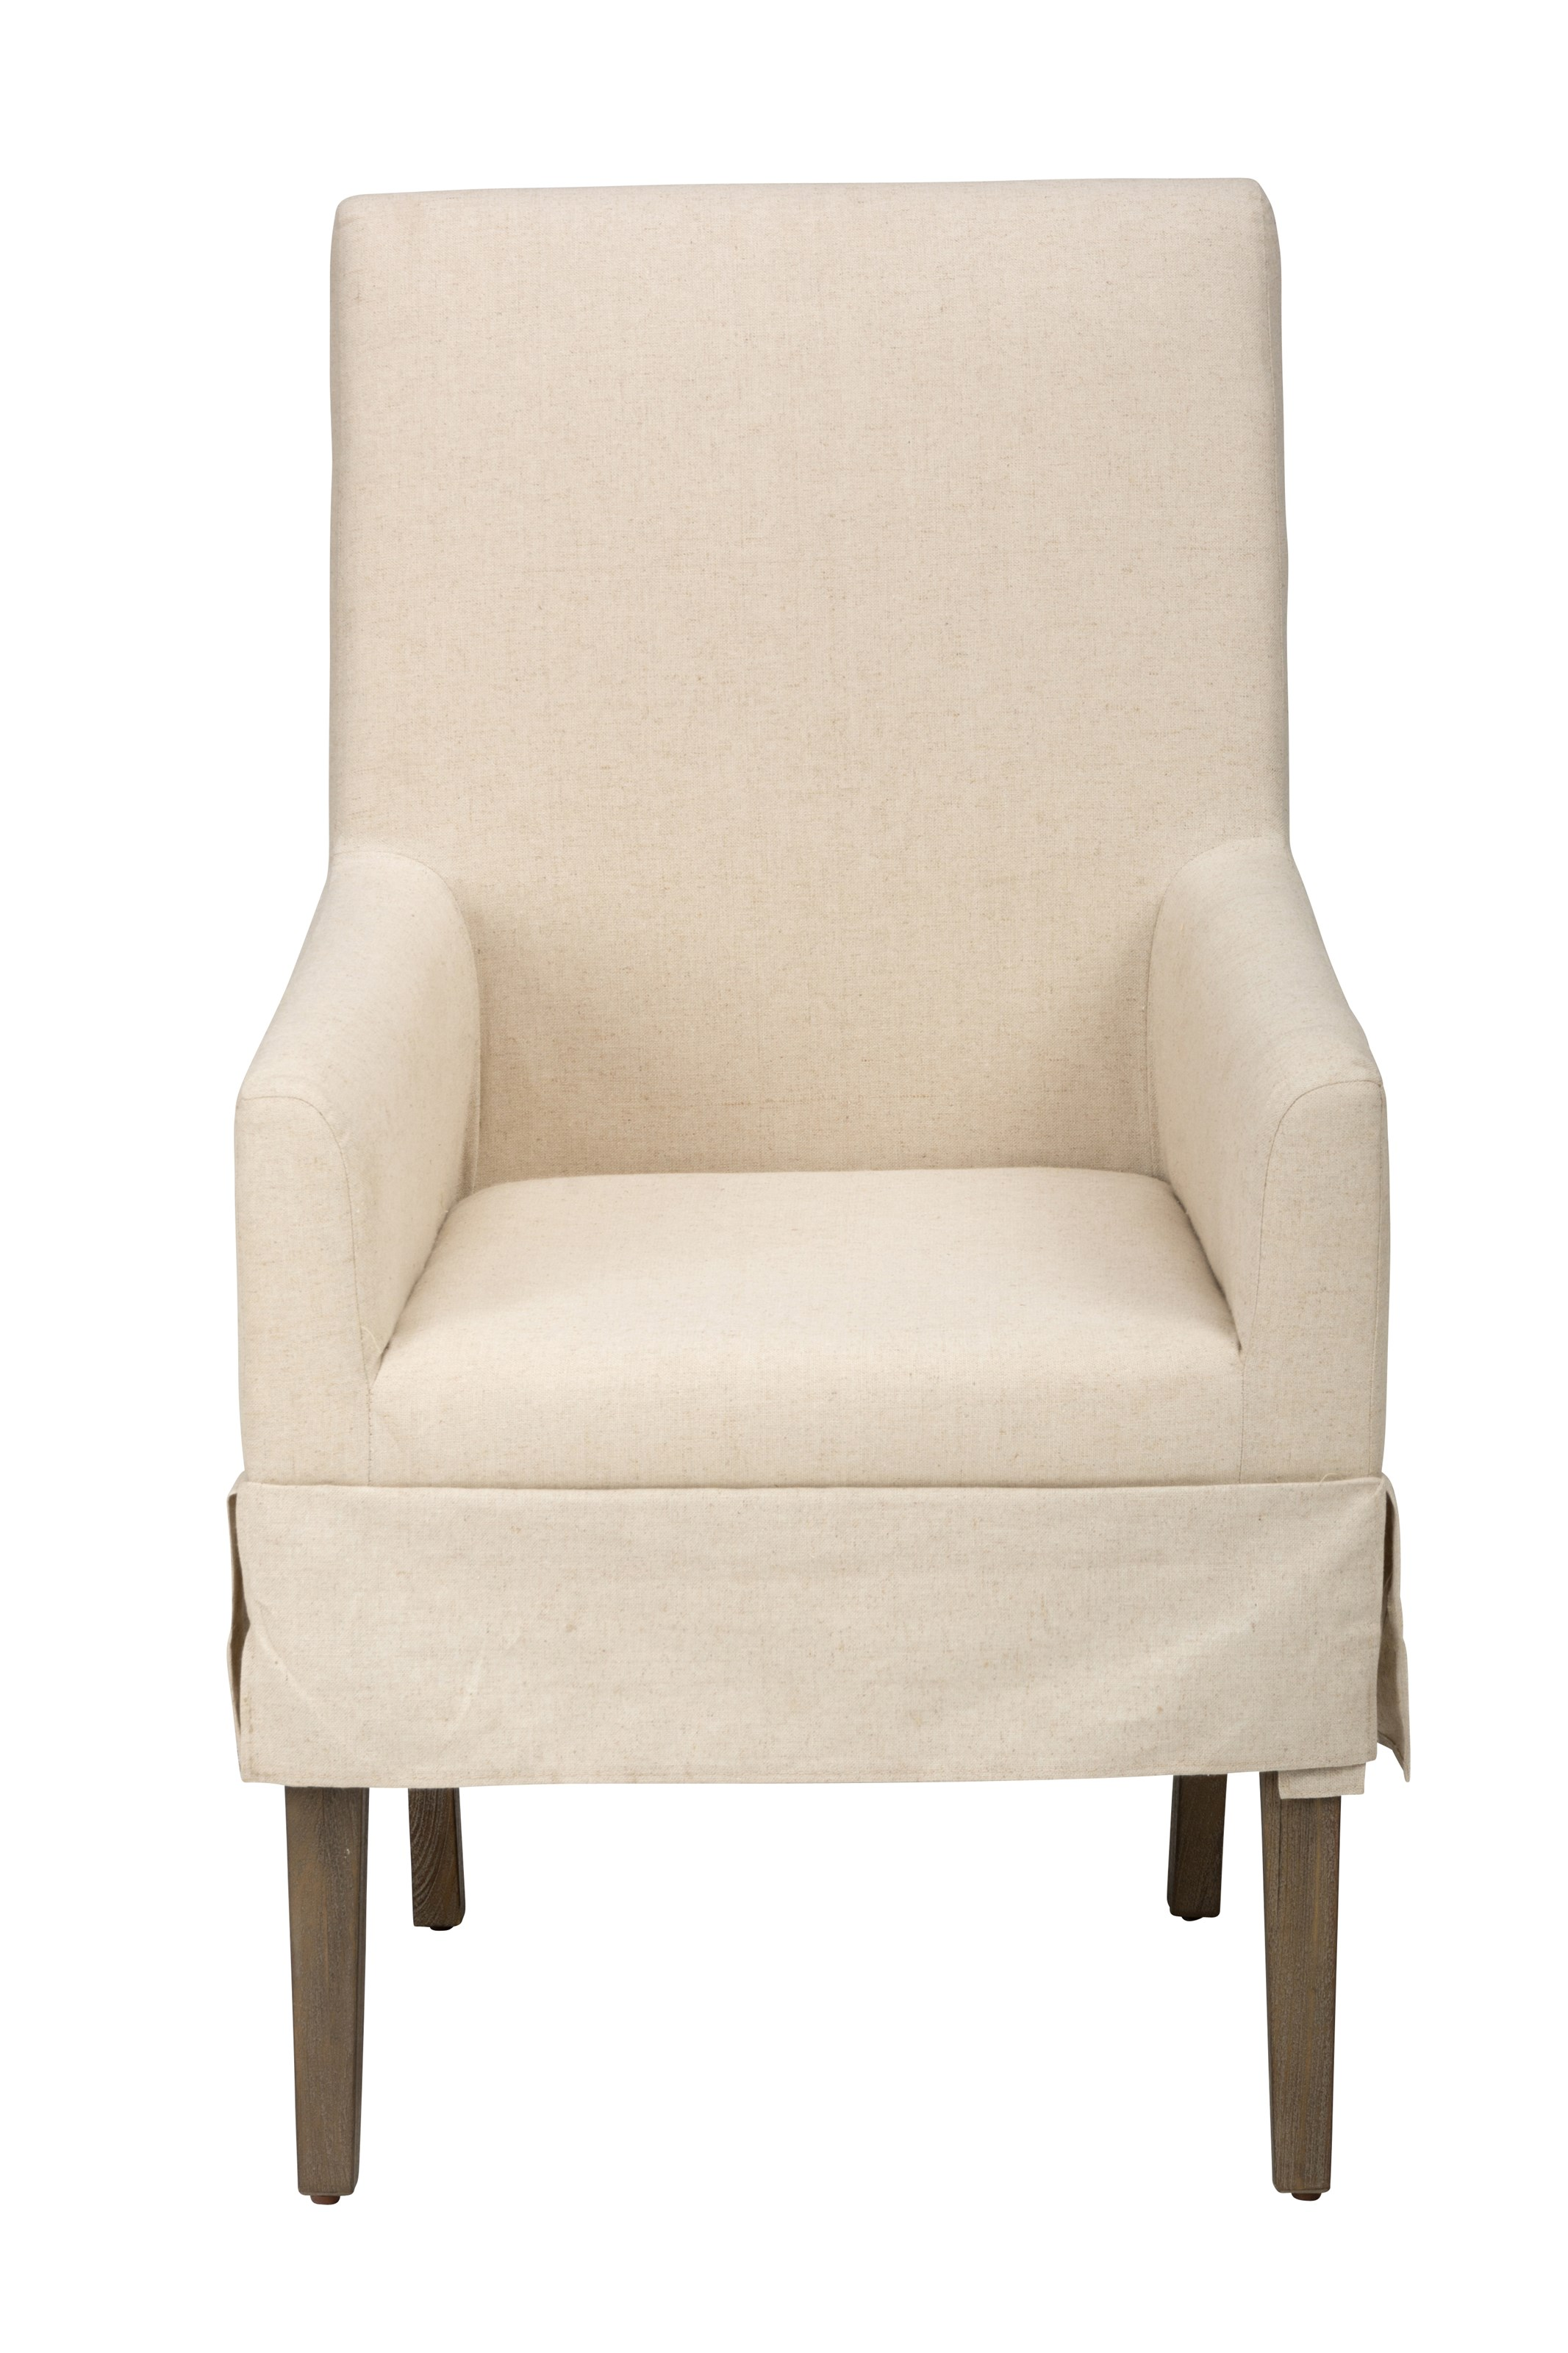 Hampton Road Slipcovered Dining Chair with Arms by Jofran at Jofran